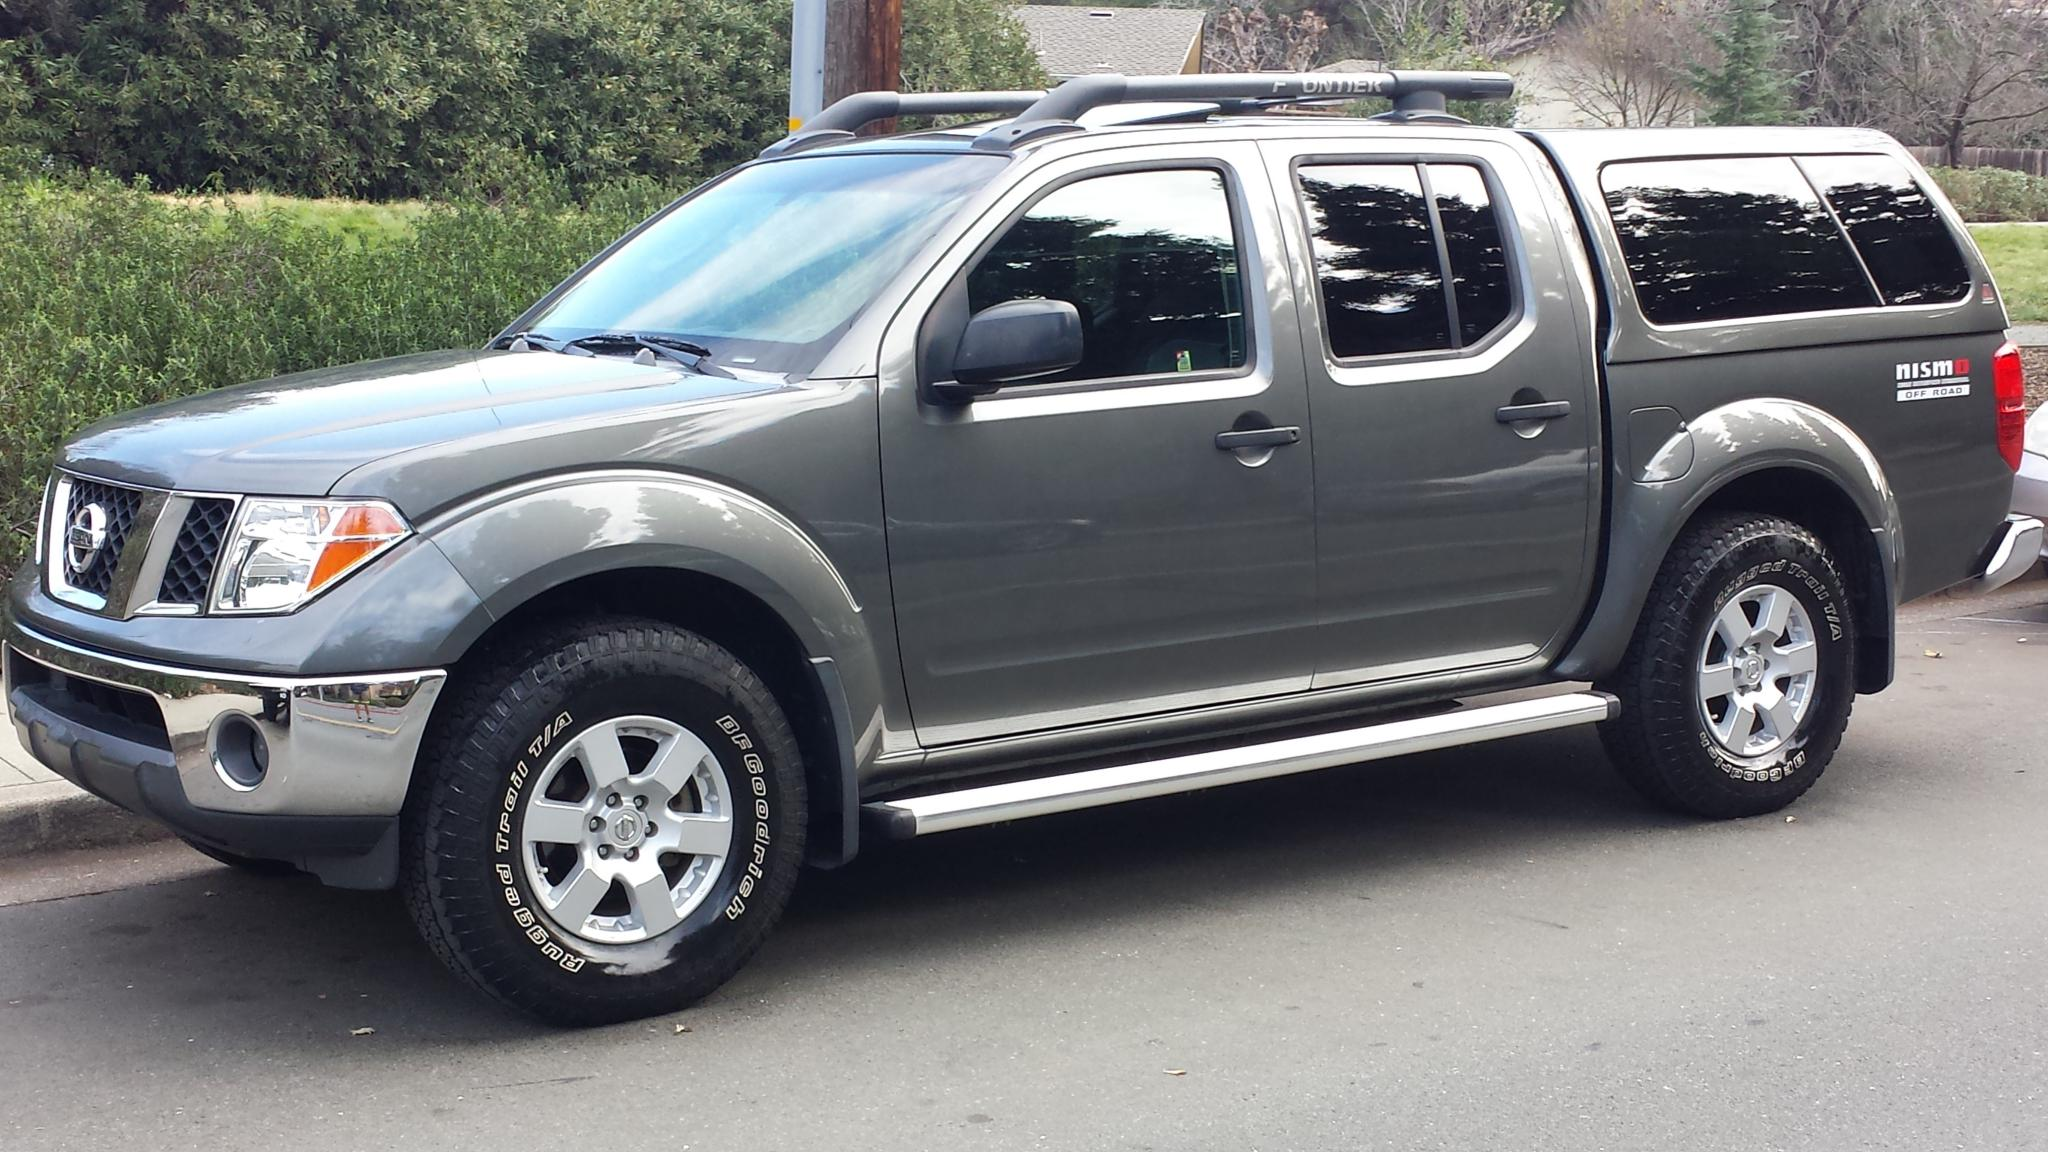 2005 frontier nismo crew cab 4wd gray nissan frontier forum click image for larger version name 20150122135242g views 290 size 3300 vanachro Gallery